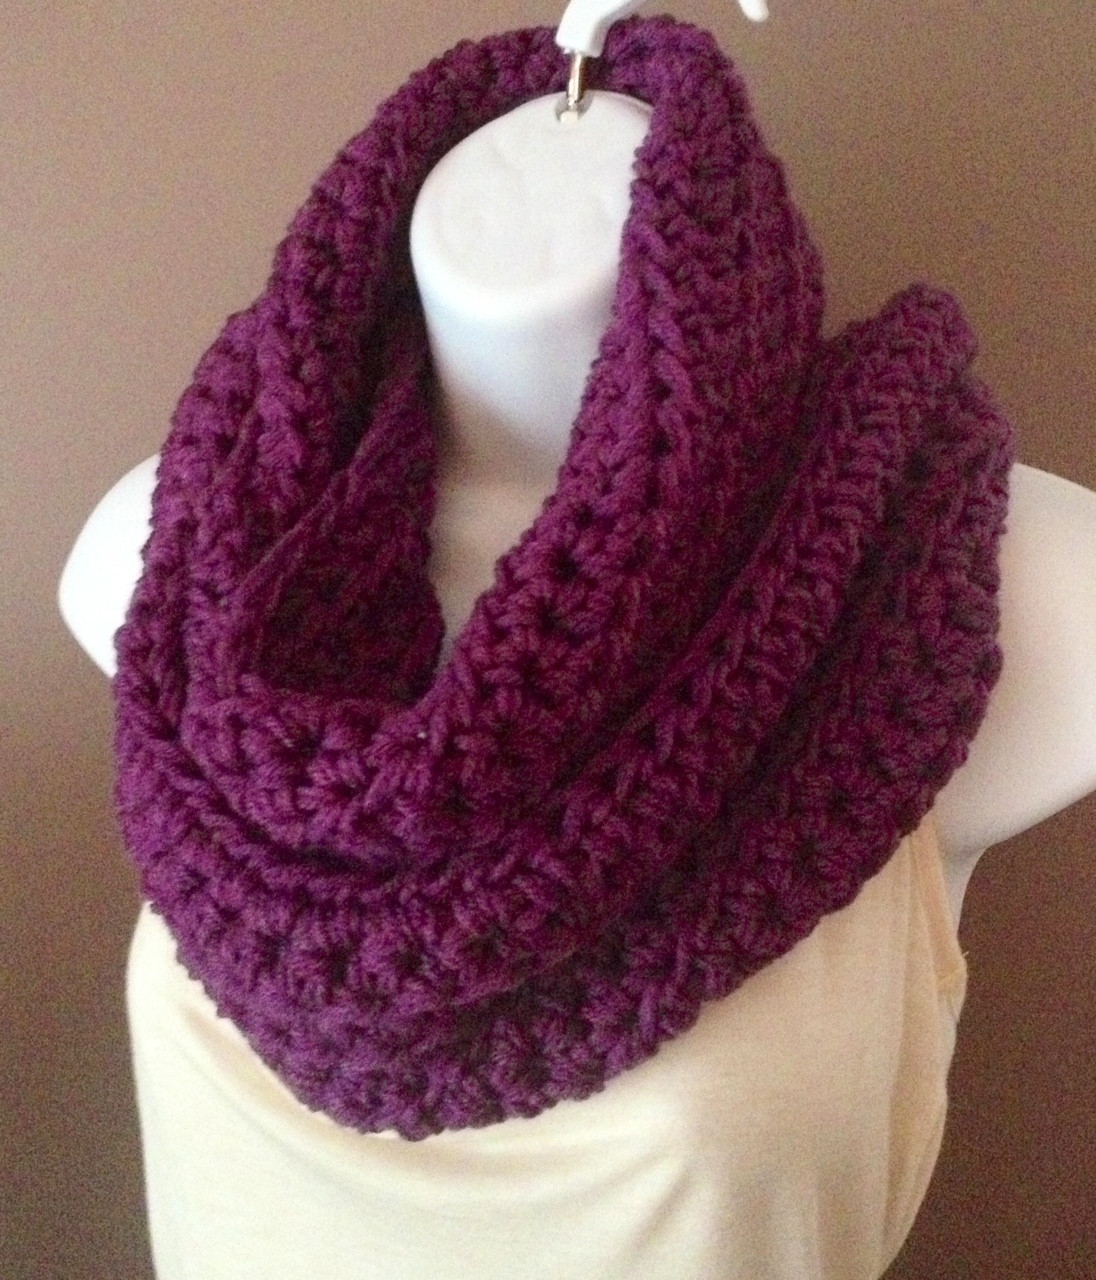 Infinity Scarf Crochet Awesome My Crochet Part 211 Of Innovative 44 Images Infinity Scarf Crochet